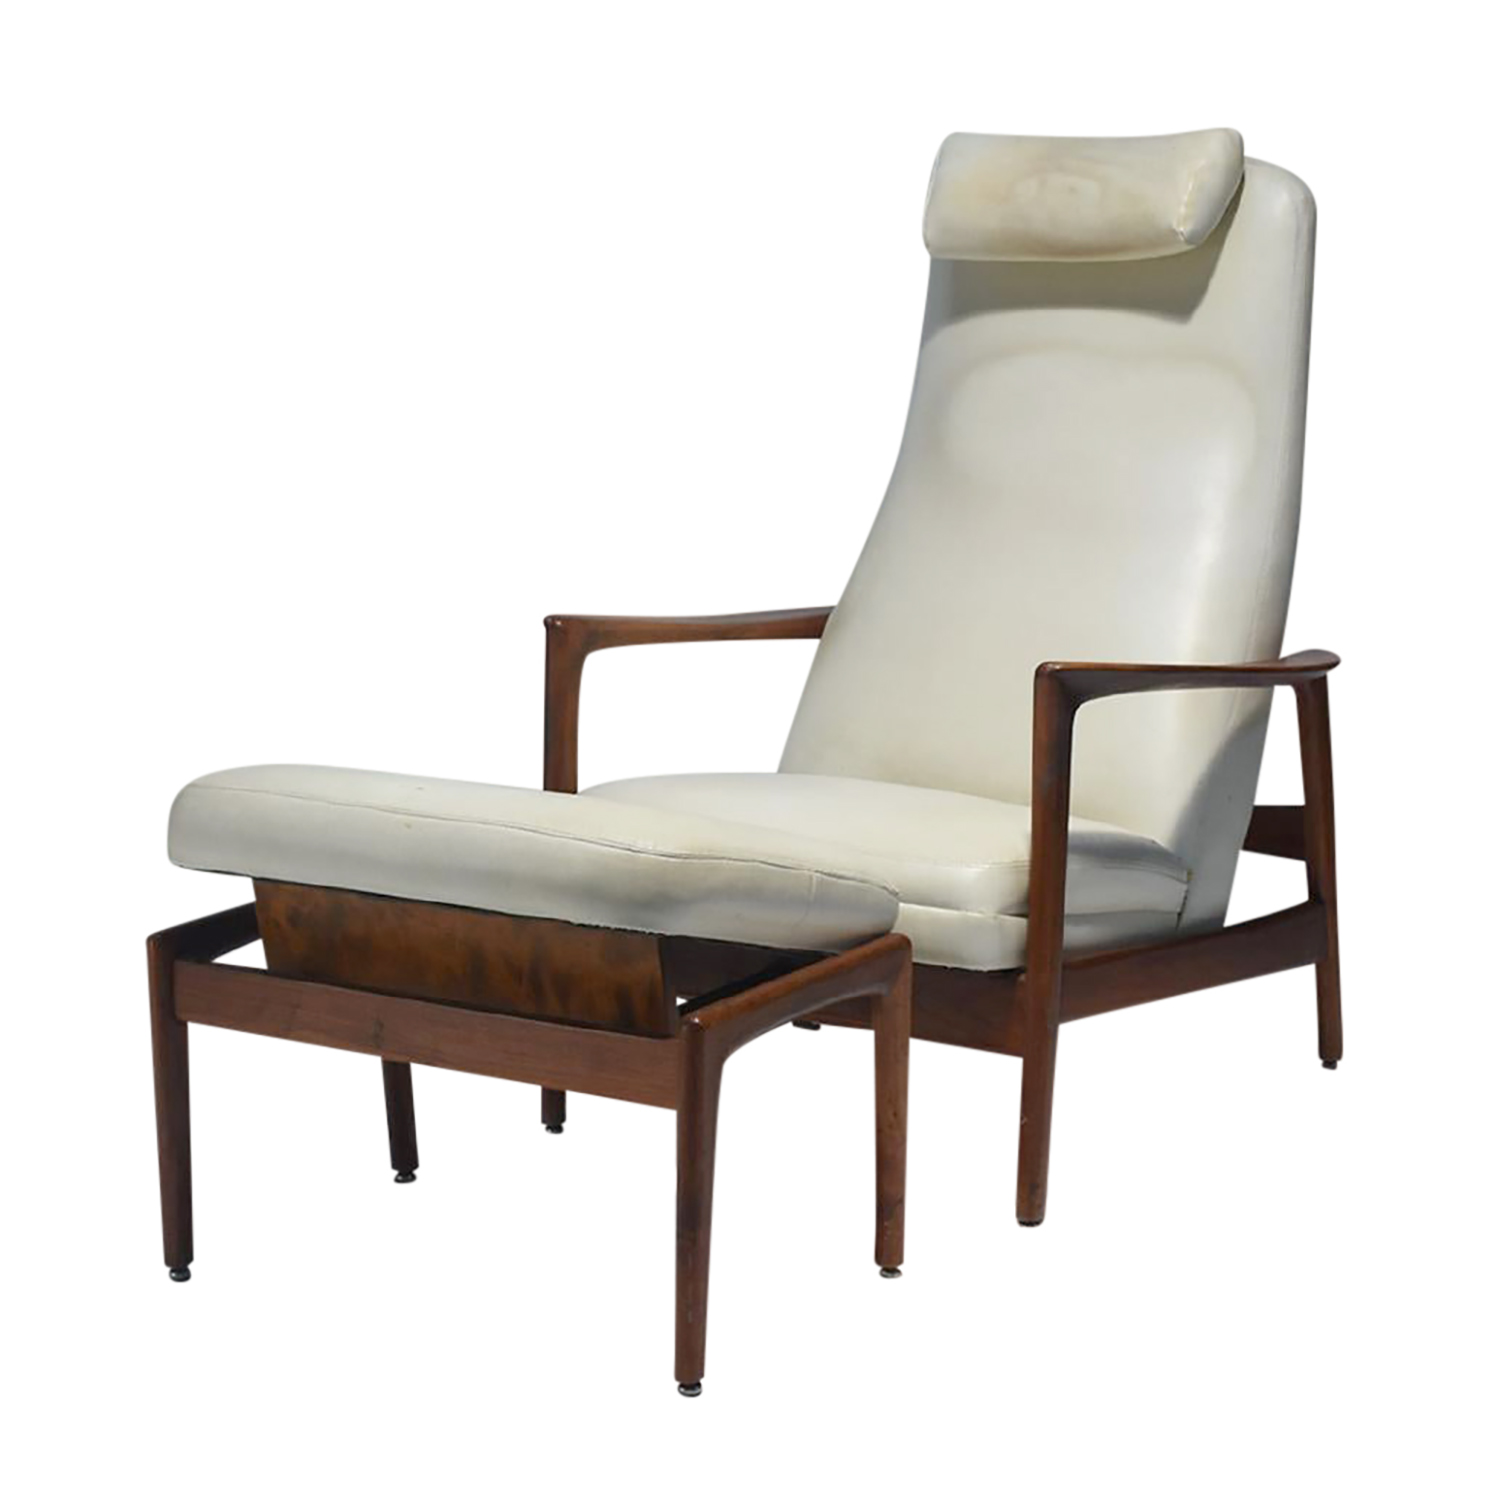 20th Century Swedish Walnut High Back Recliner Set by Dux